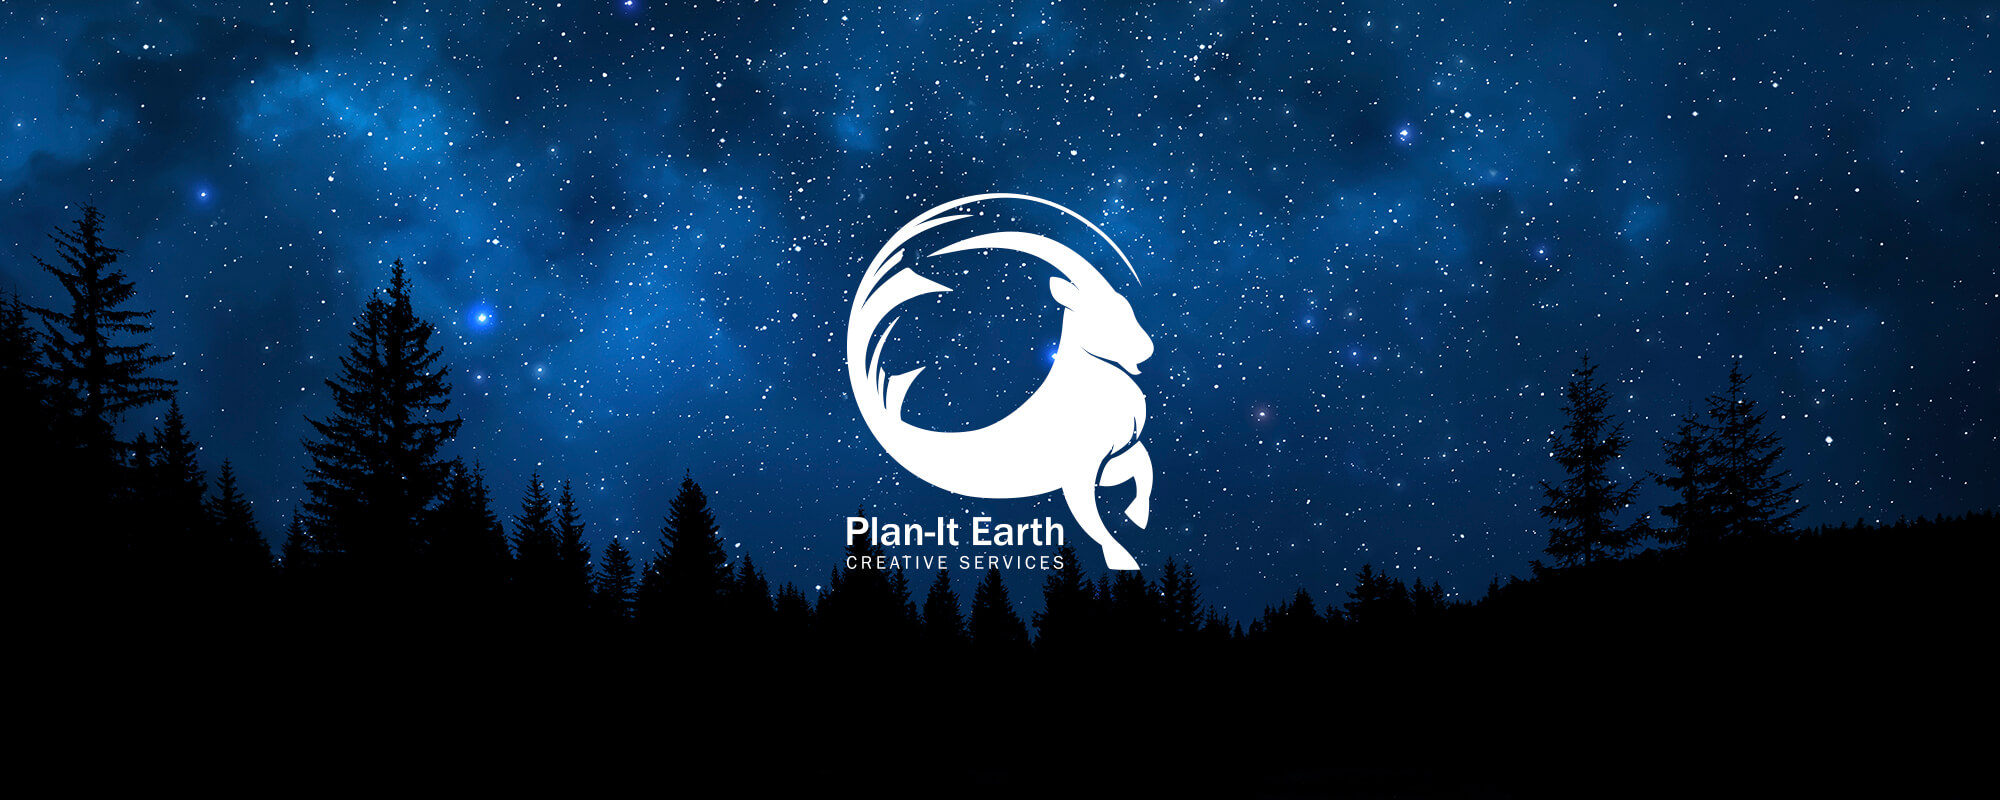 Plan-It Earth Logo on a Starry Night Background